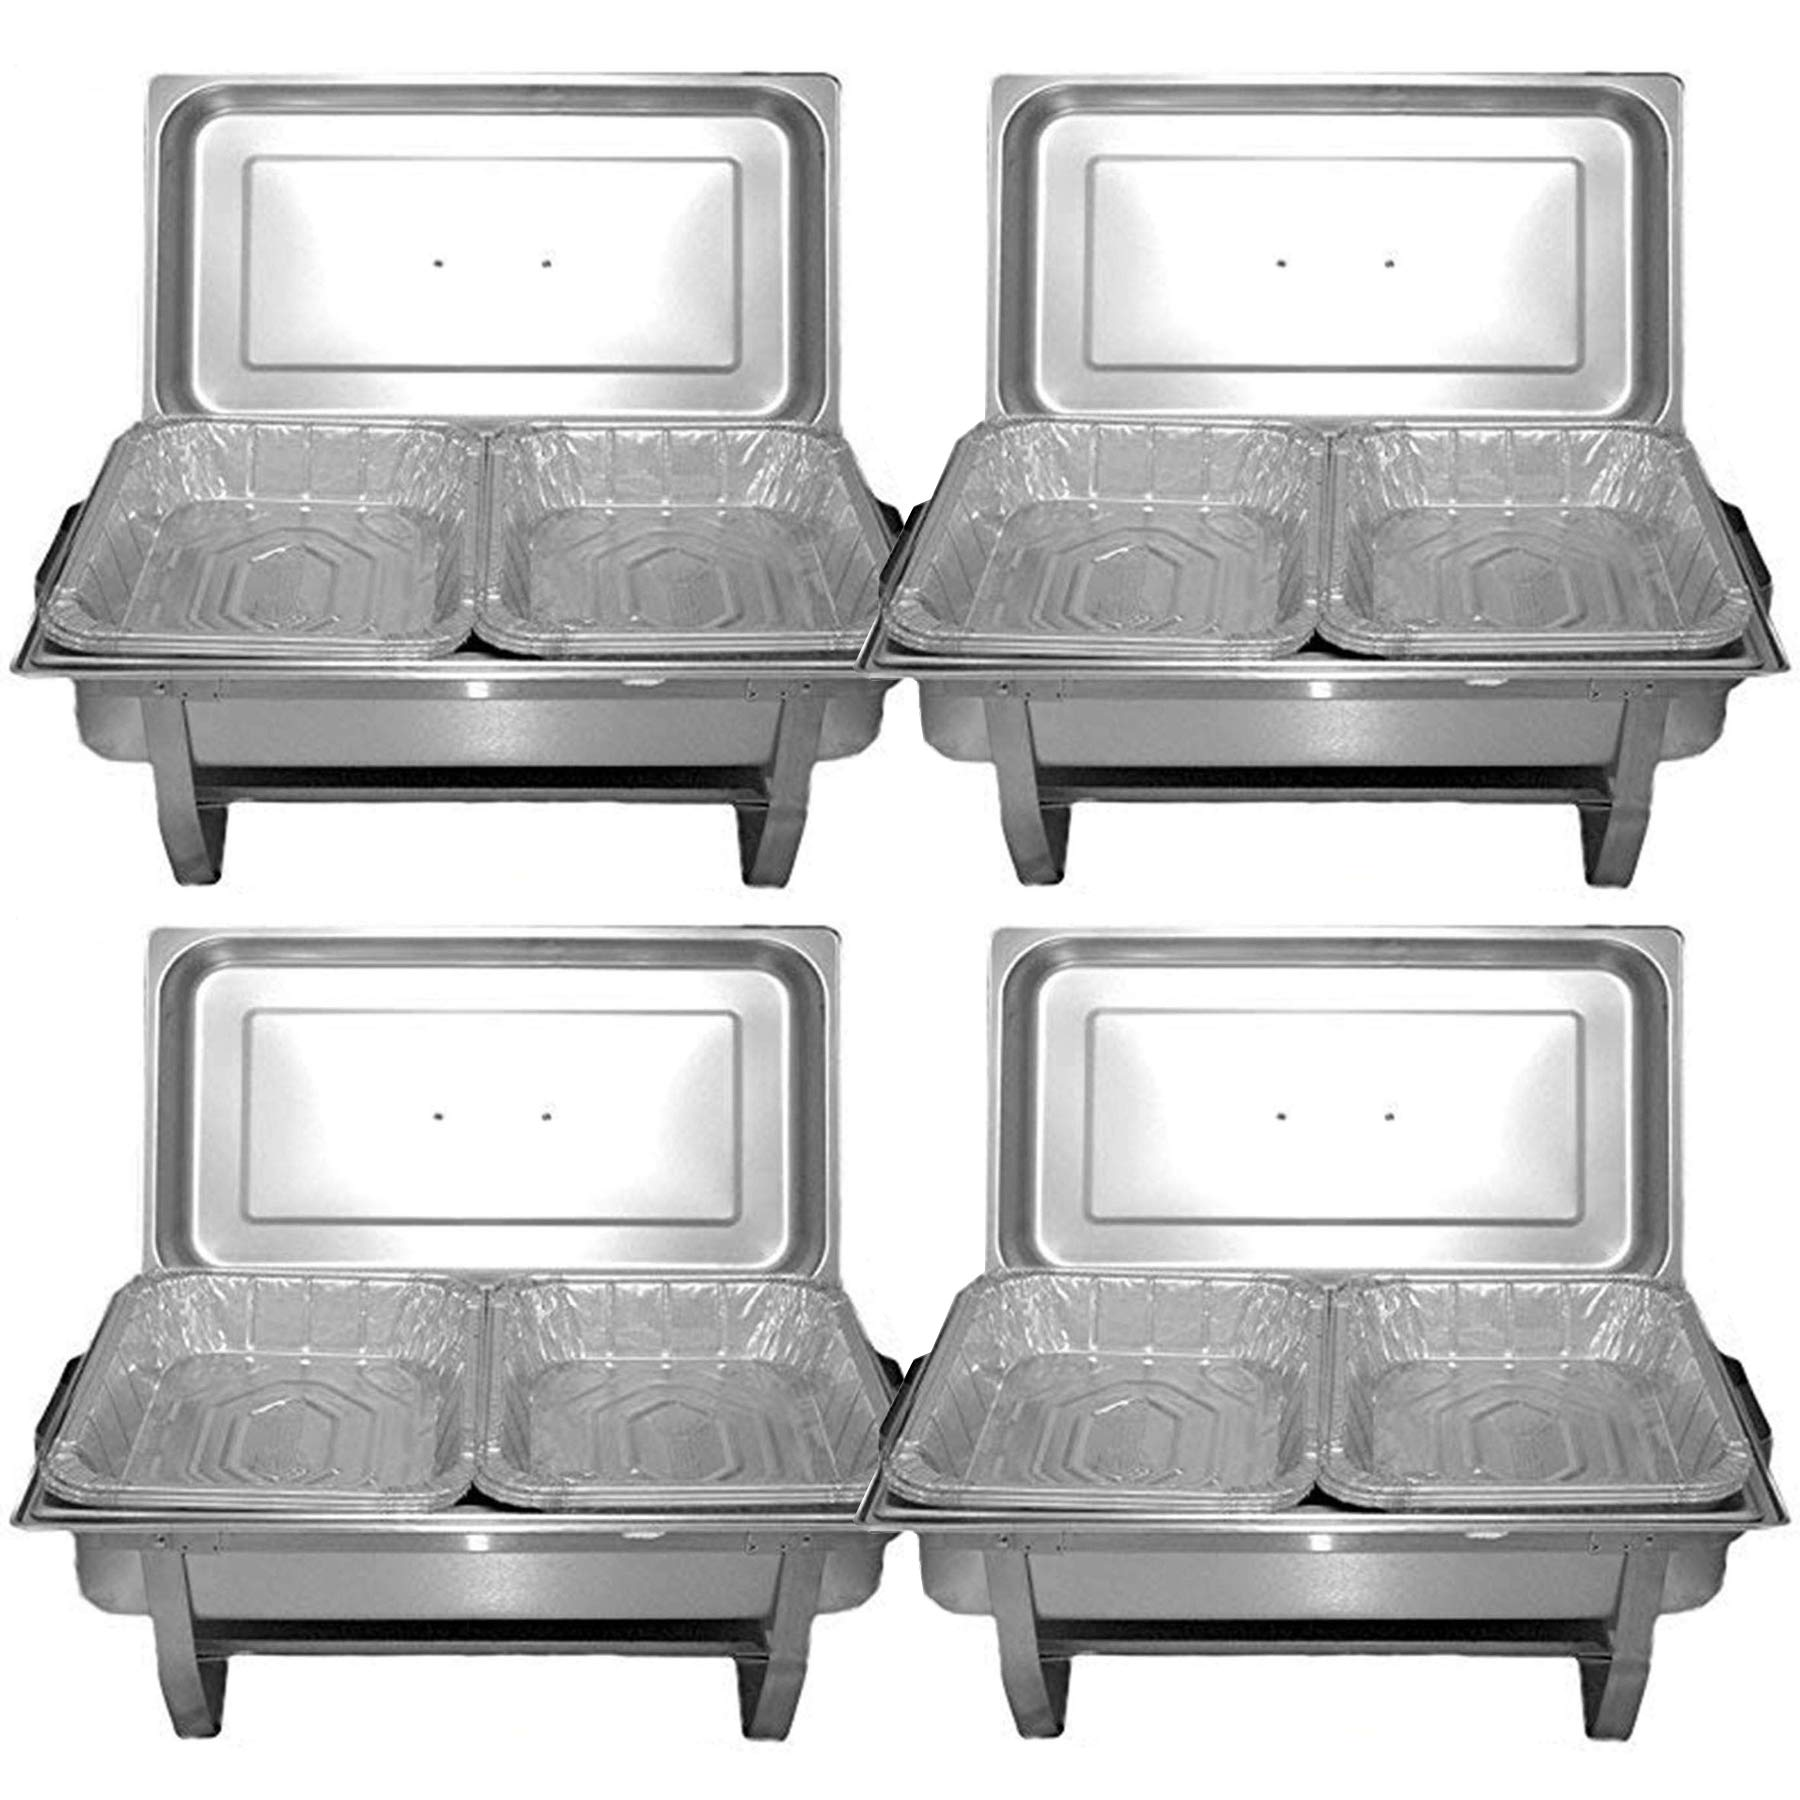 TigerChef Chafing Dish Buffet Set - Chaffing Dishes Stainless Steel - 4 Chafer and Buffet Warmer Sets with Water Pan, Food Pan and Disposable Pans